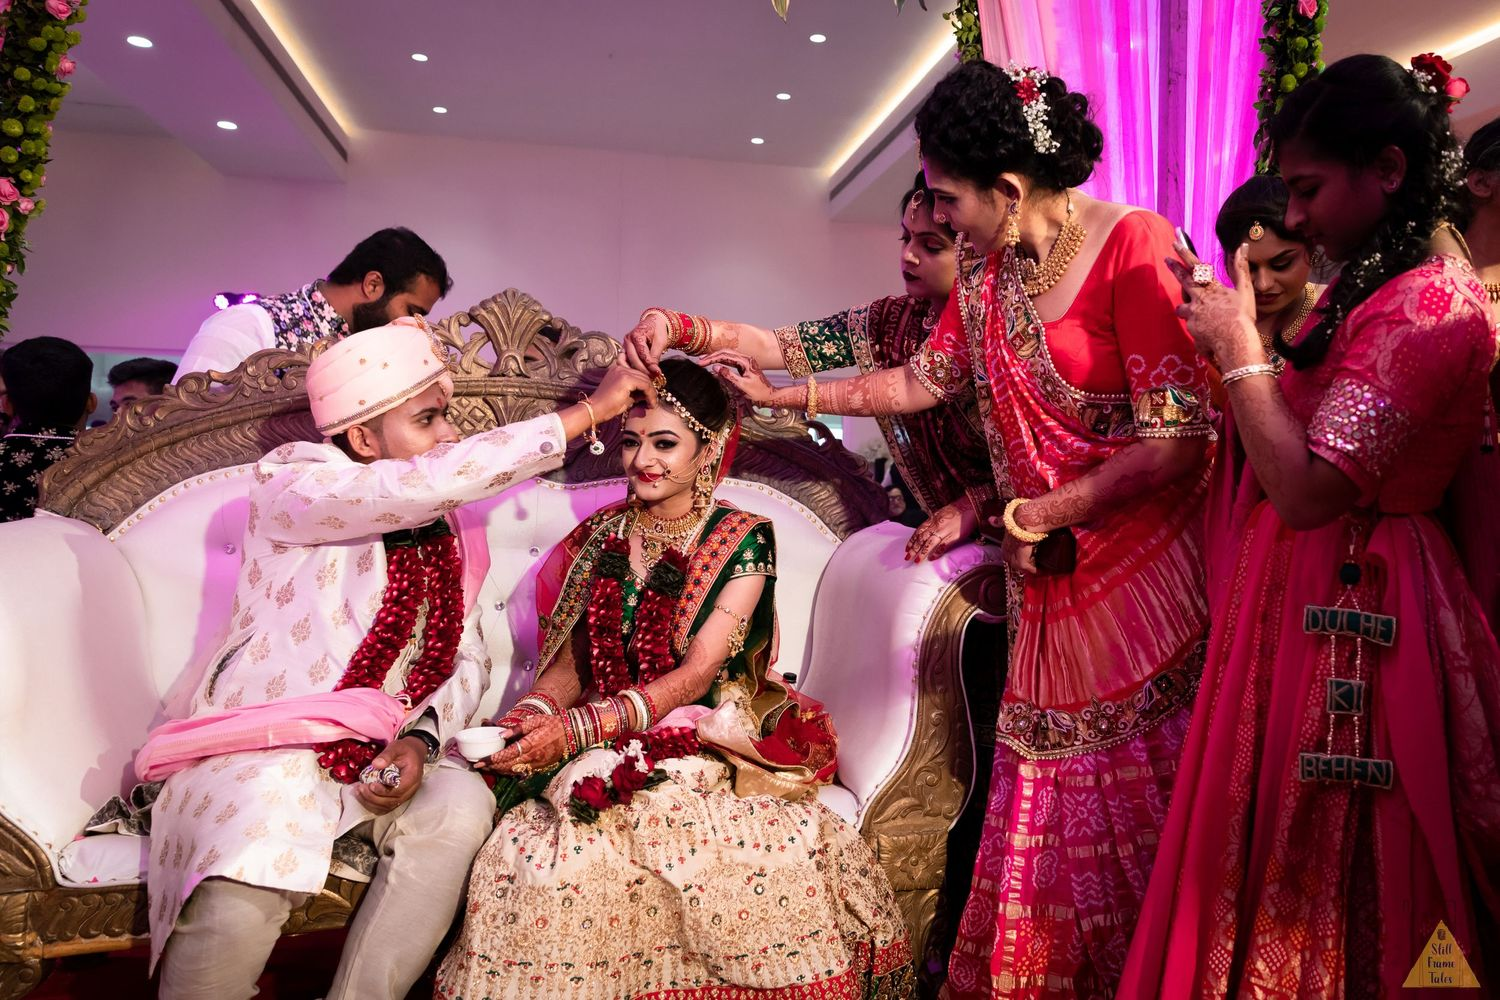 Groom putting a sindoor over bride's forehead at a destination wedding